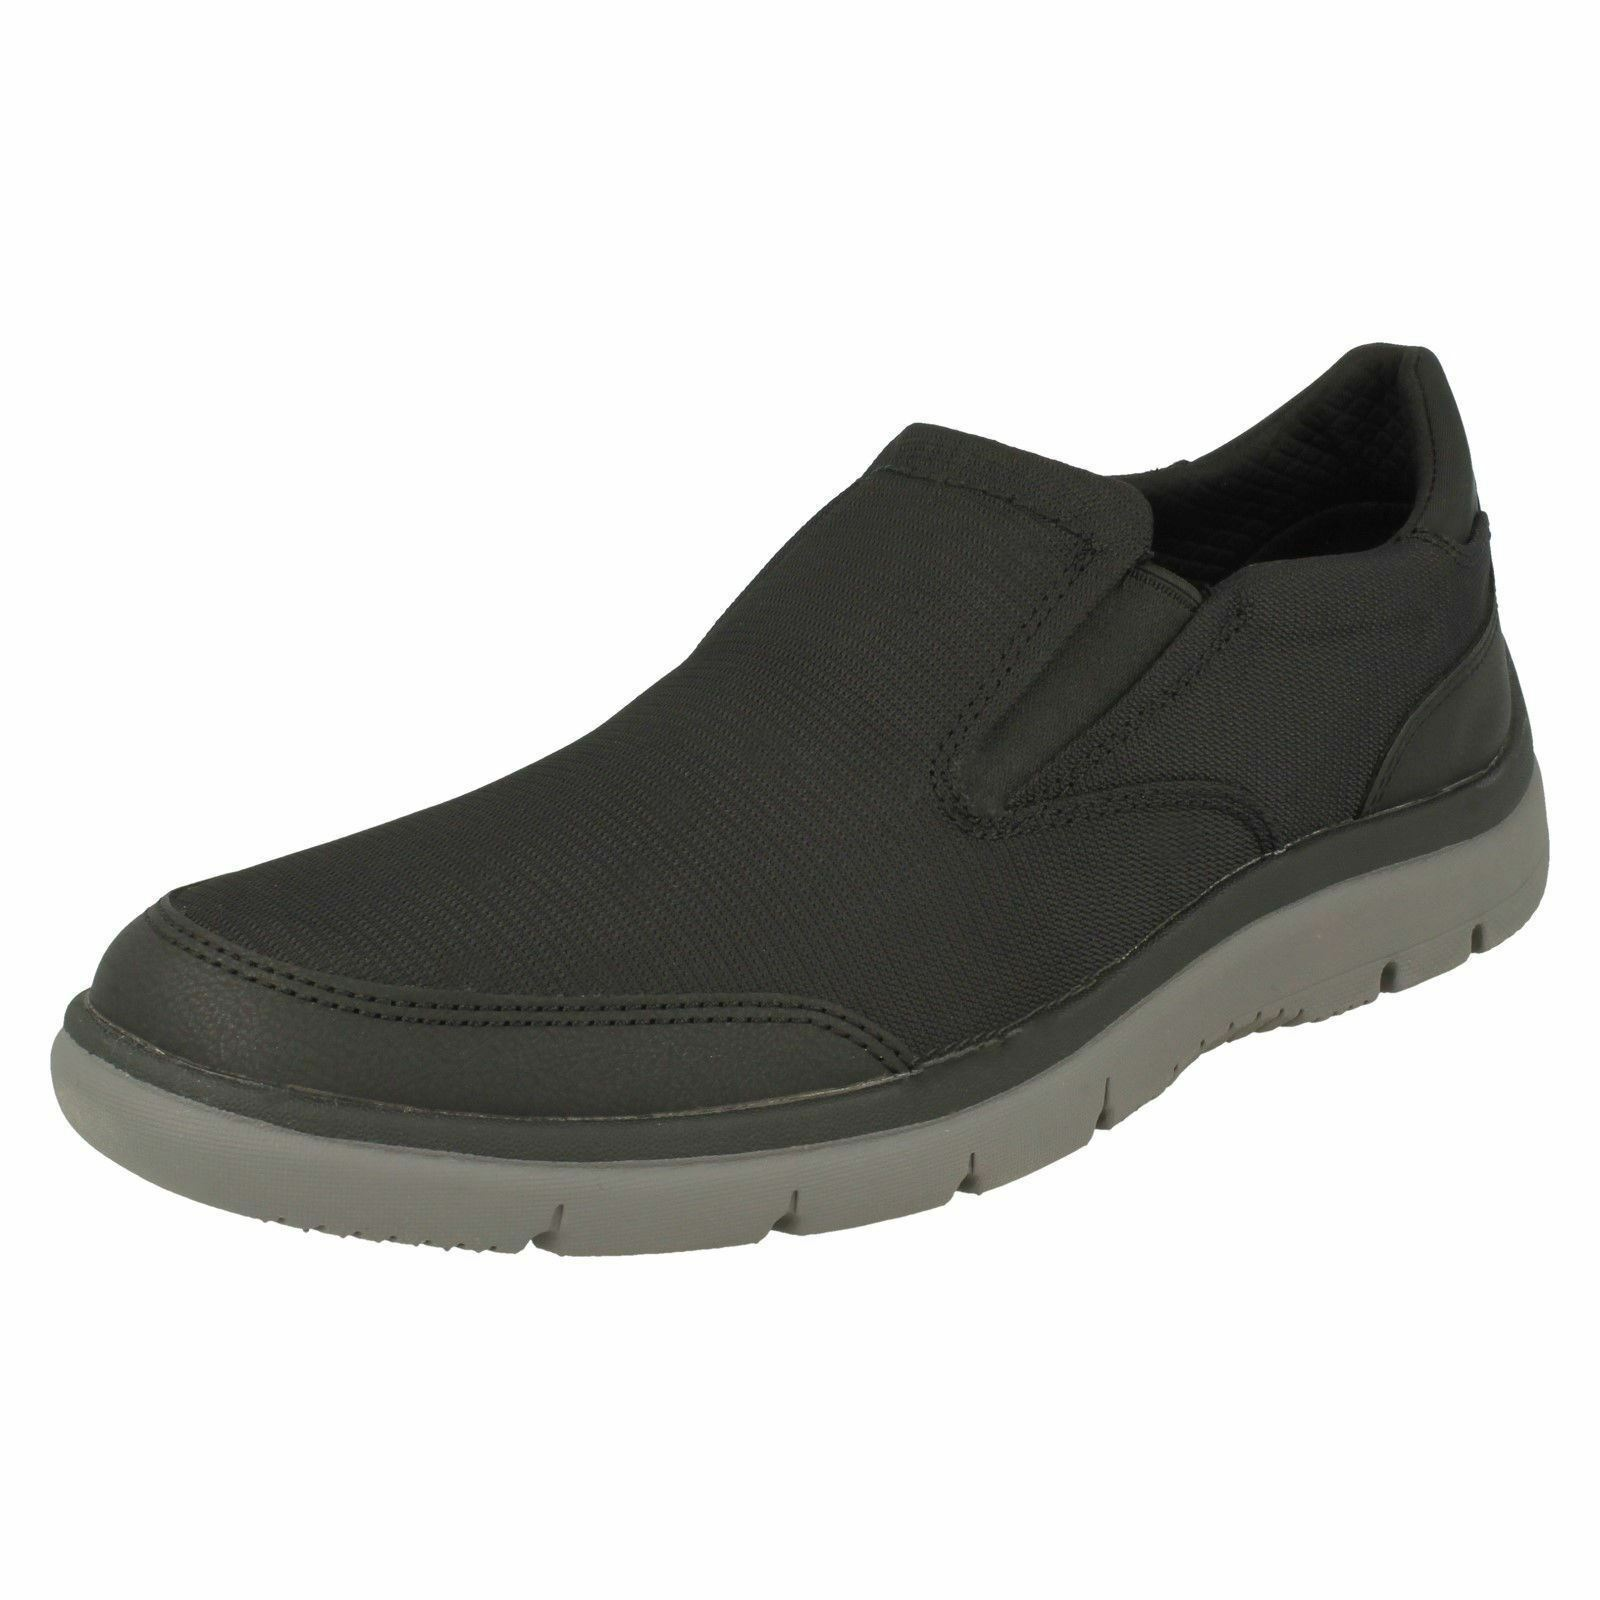 Mens Clarks CloudSteppers Tunsil Step Casual Slip On Shoes